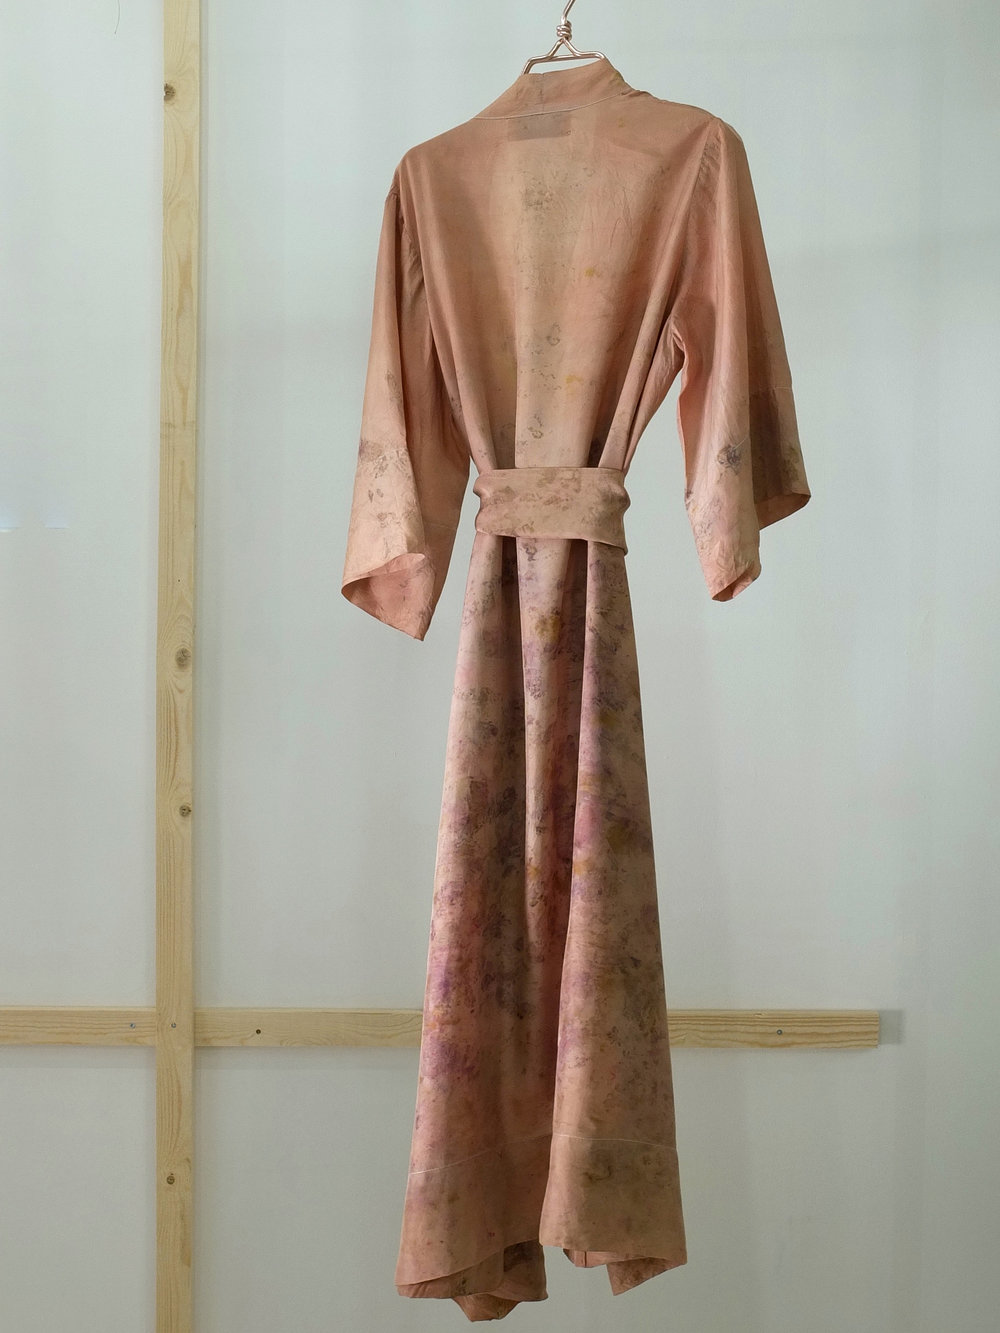 Robe 17 back m belte, str M.JPG